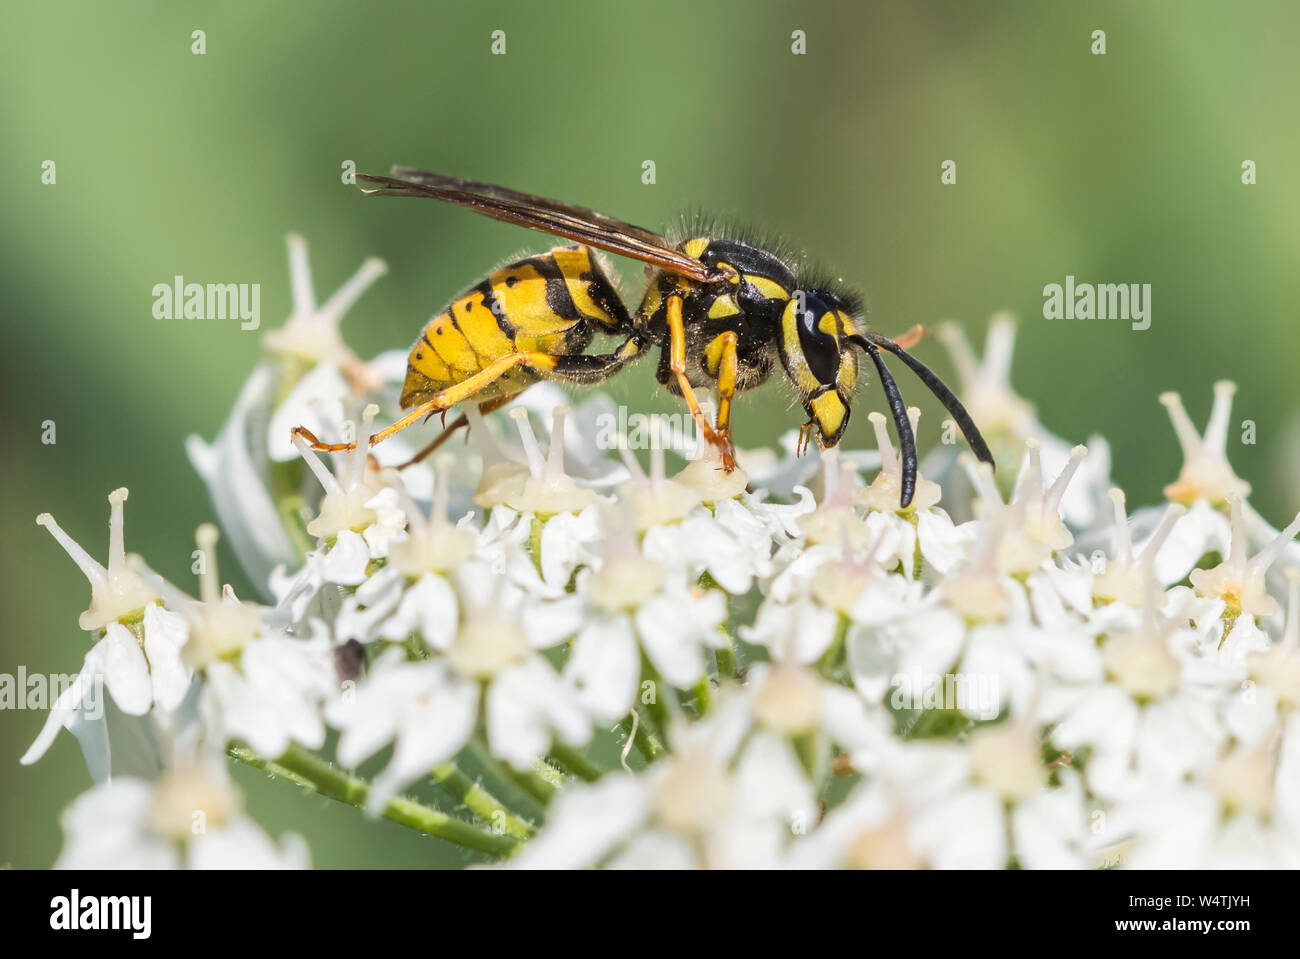 Vespula Vulgaris (Common Wasp, European Wasp, Common yellow jacket wasp) in Summer in West Sussex, England, UK. Stock Photo